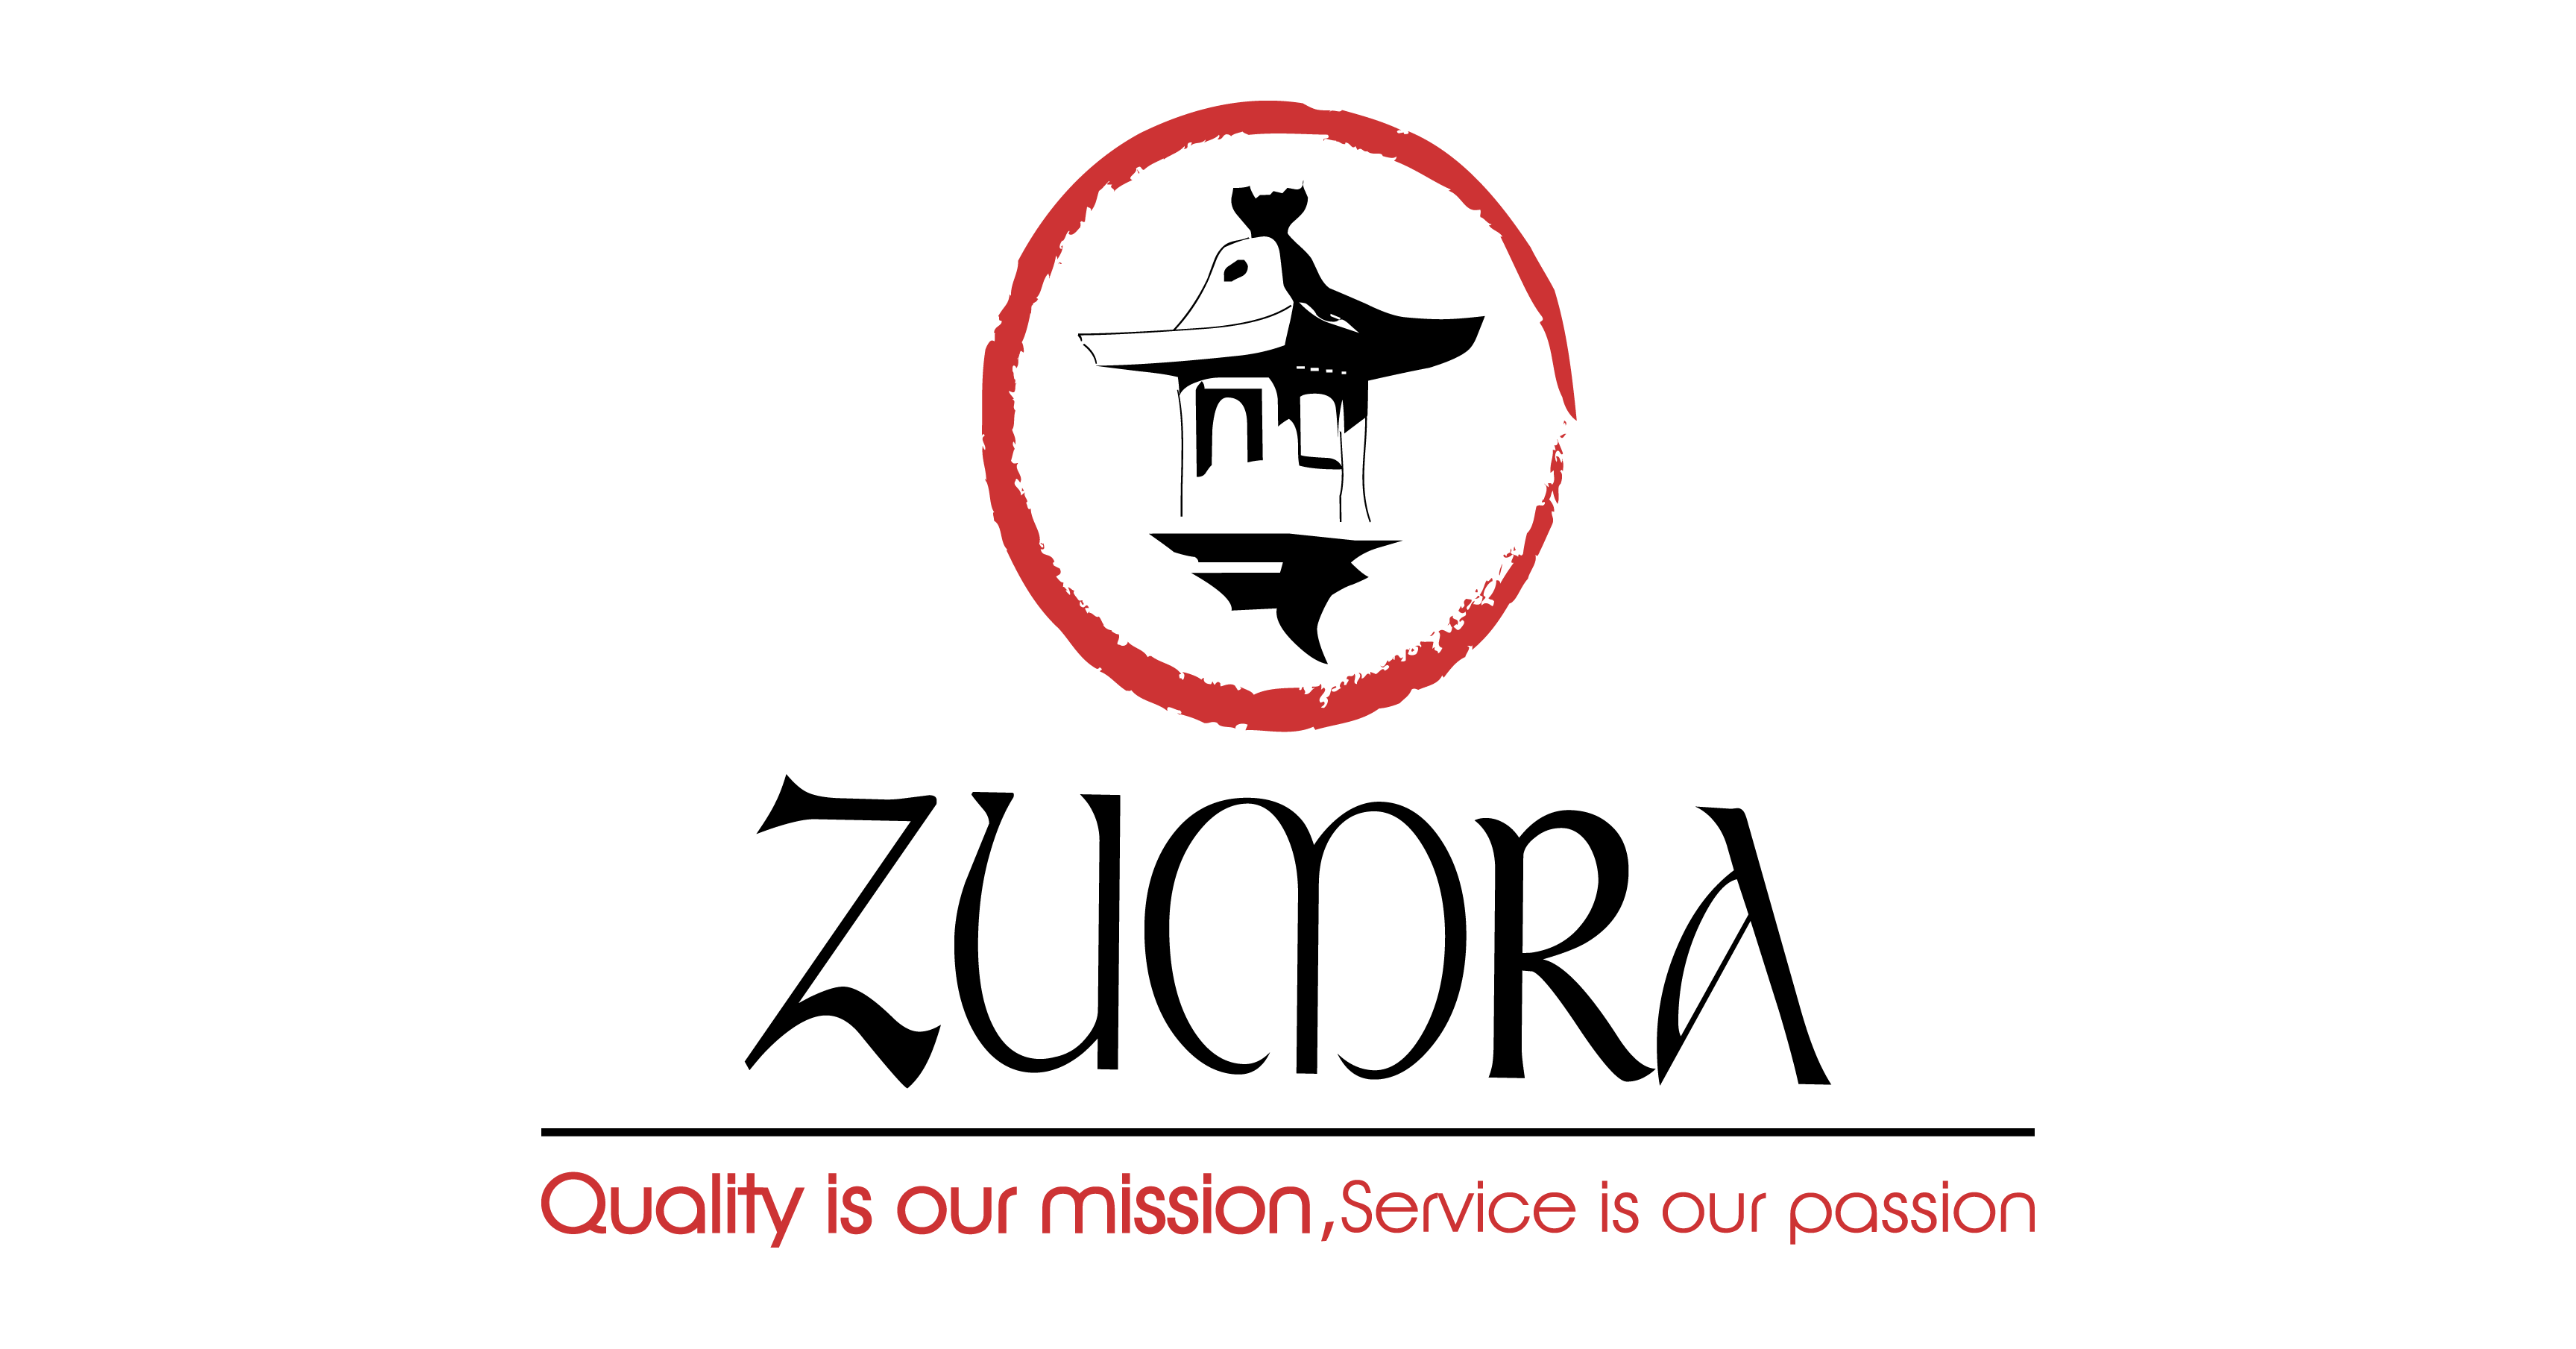 Job: Sales Manager at Zumra Food in Cairo, Egypt